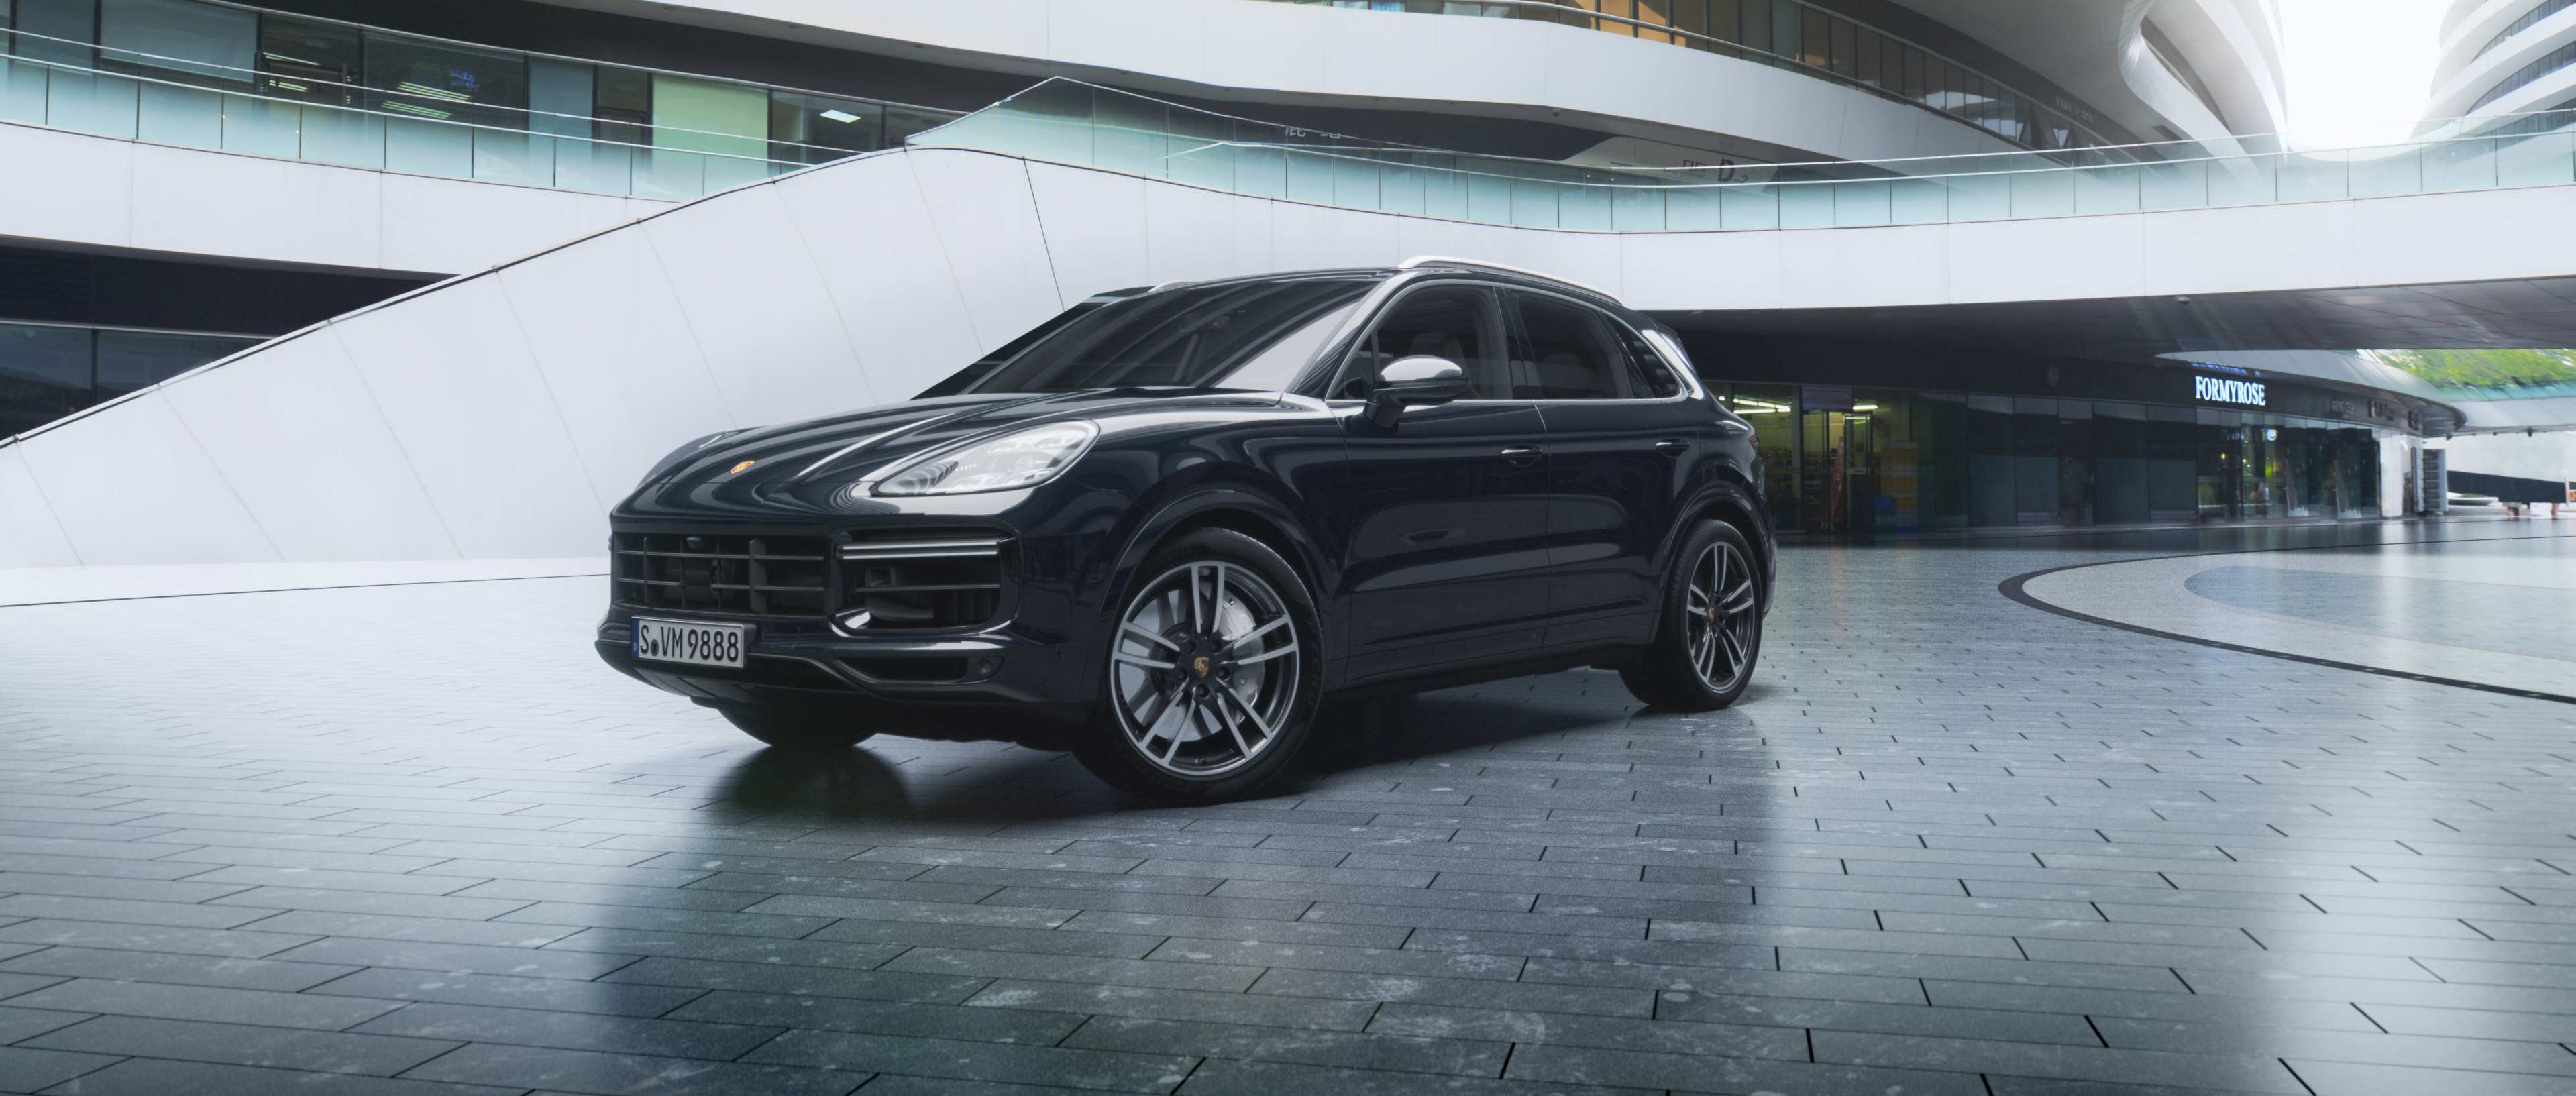 48 The Best 2019 Porsche Cayenne Pictures